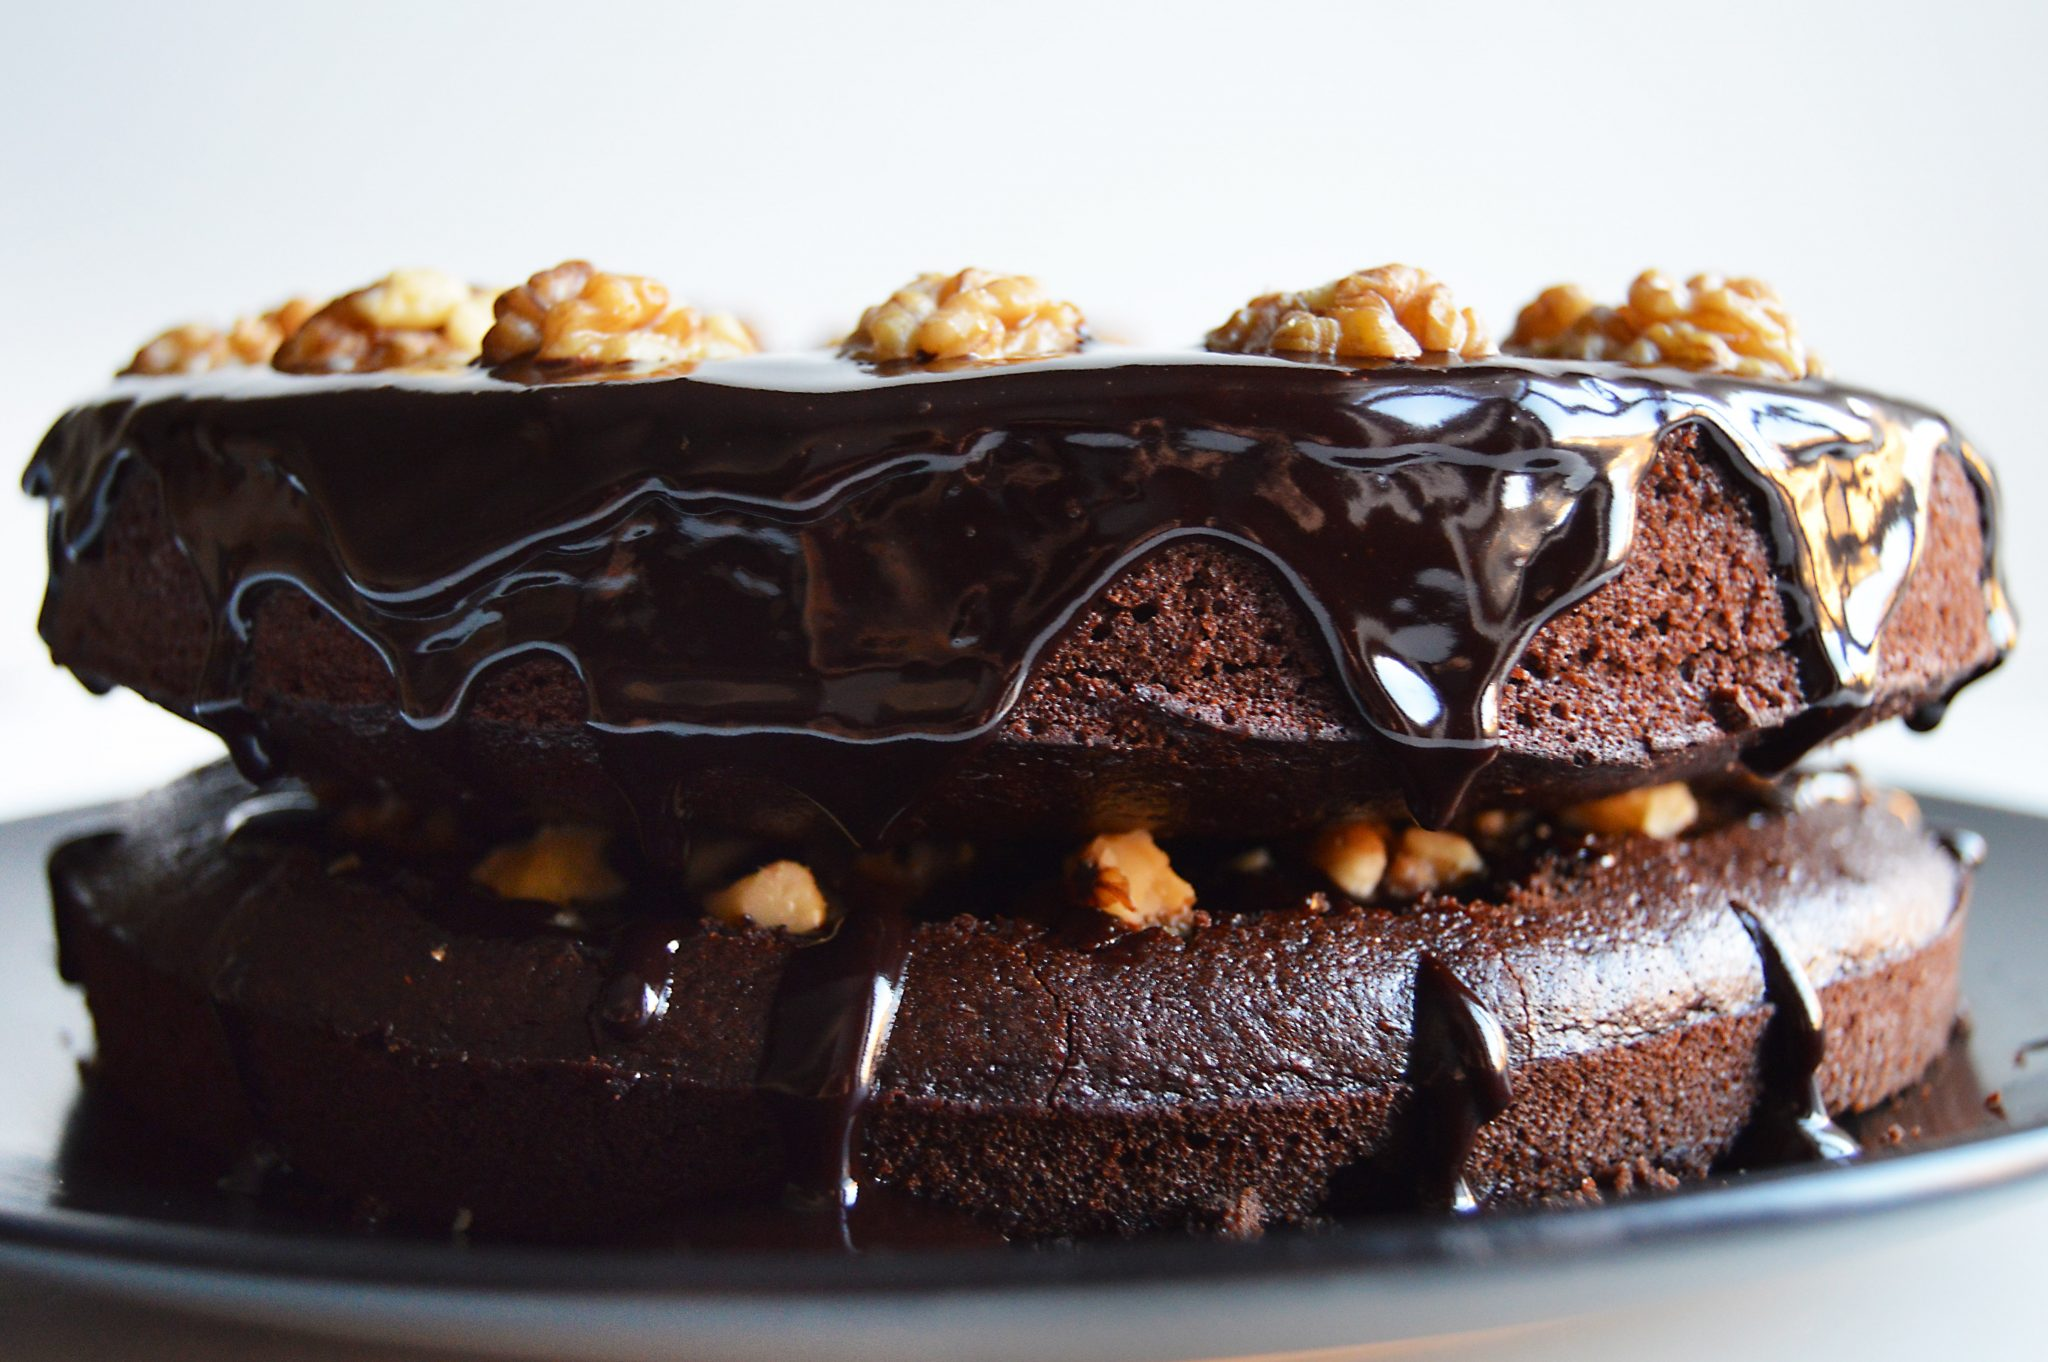 Chocolate Walnut Cake Images : Vegan Chocolate Walnut Cake (+ Video) - My Vibrant Kitchen